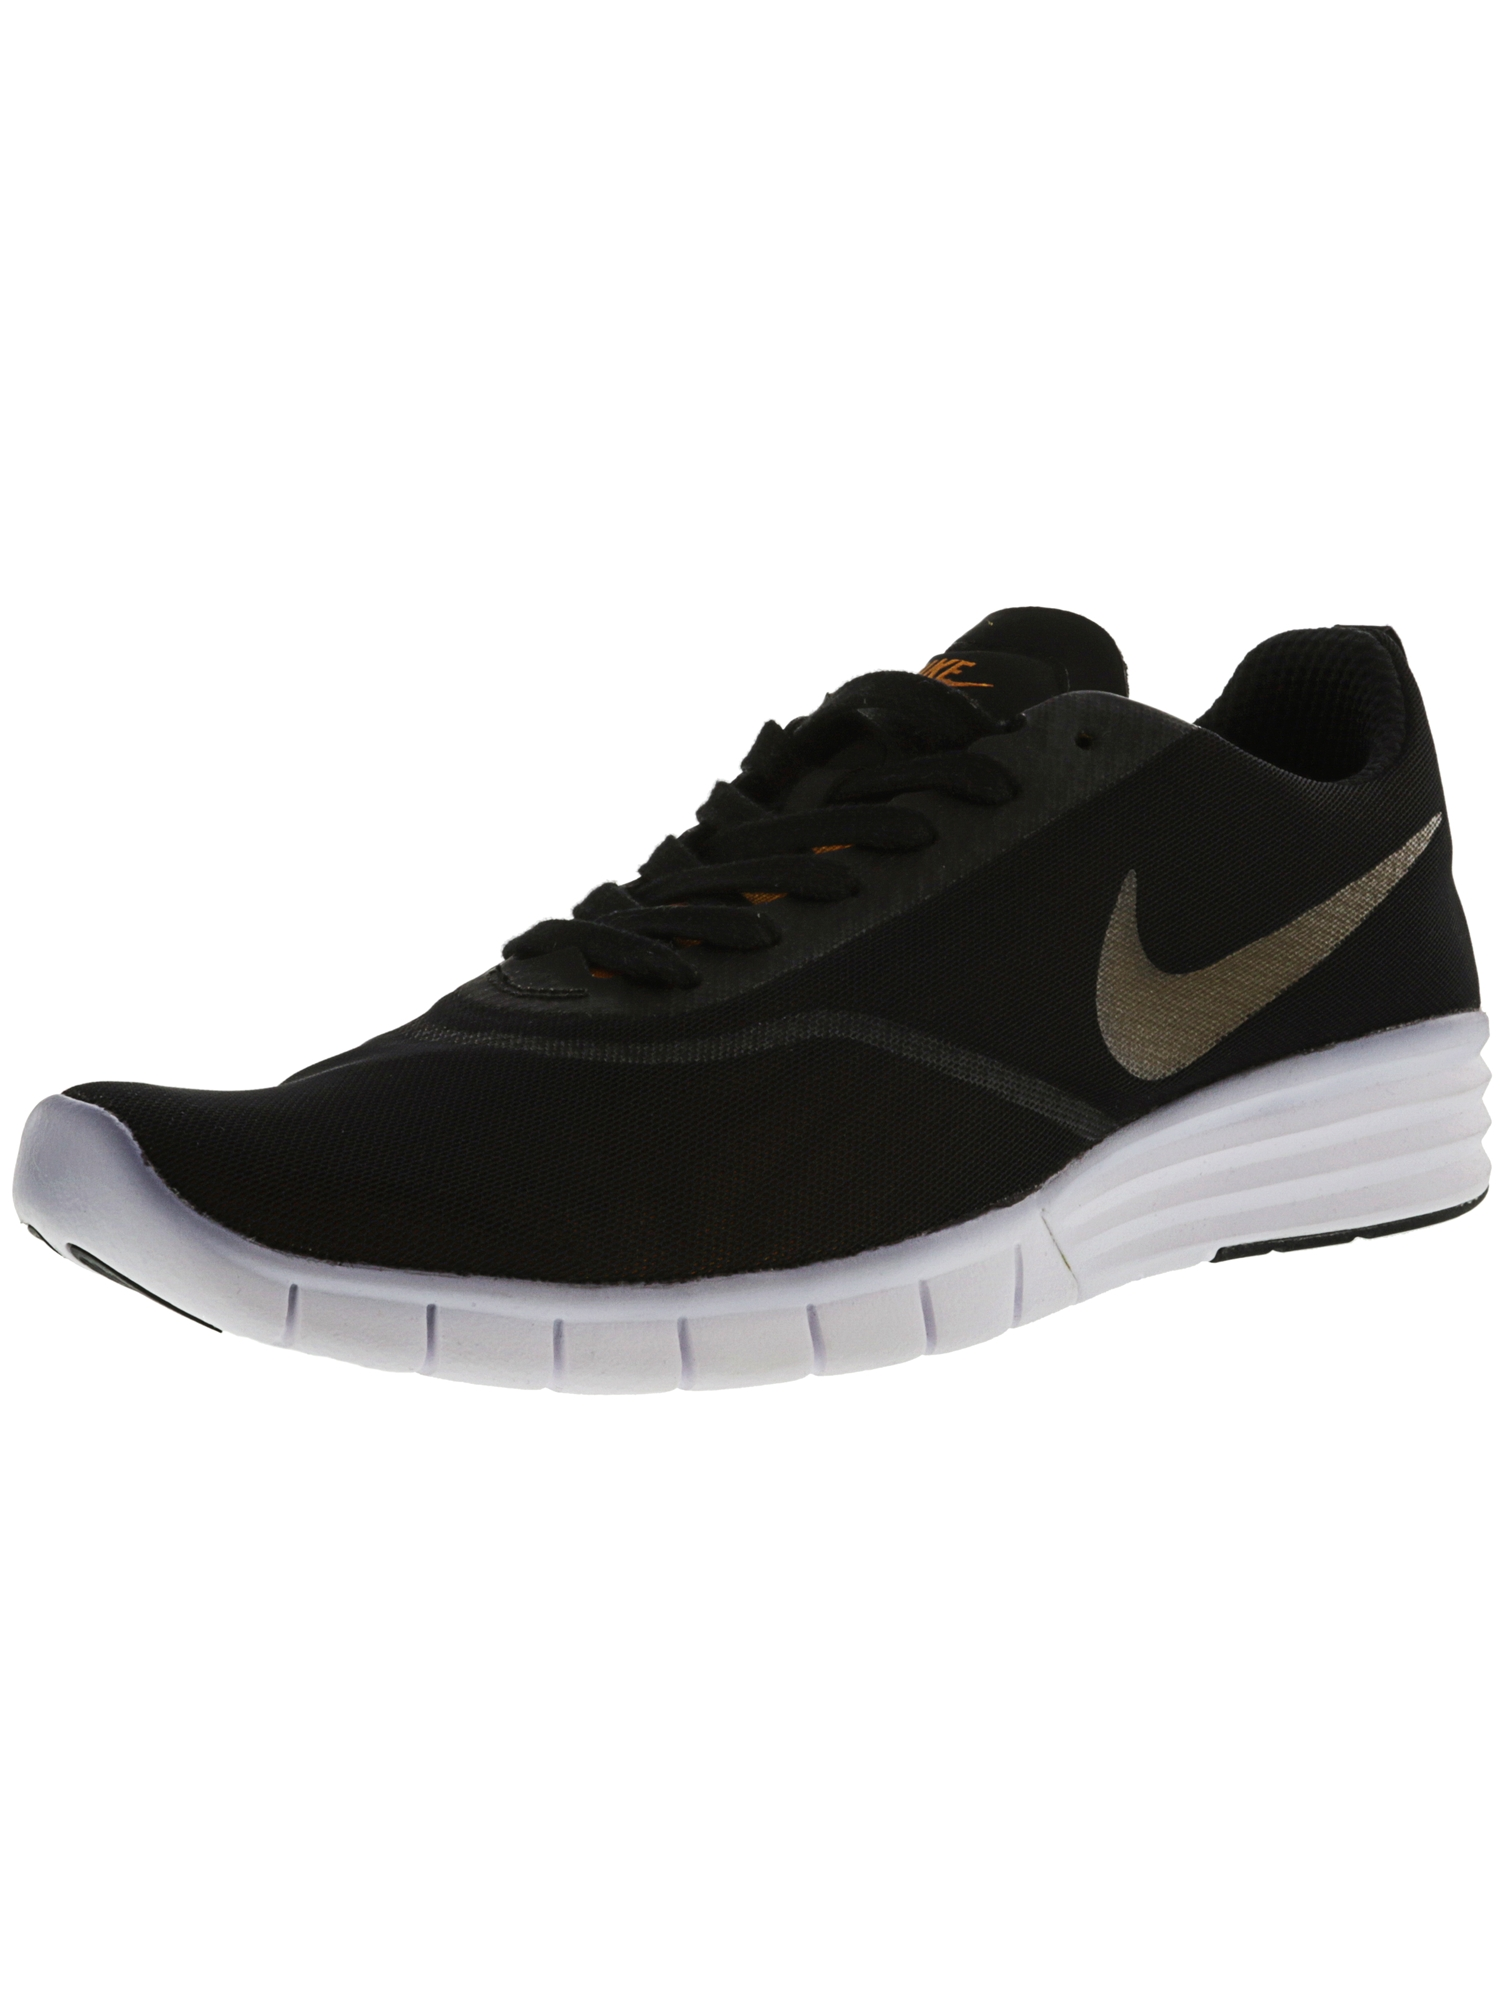 4d8156dd431a Nike Men s Sb Lunar Paul Rodriguez 9 Black   Sunset - White Ankle-High  Skateboarding Shoe 9.5M